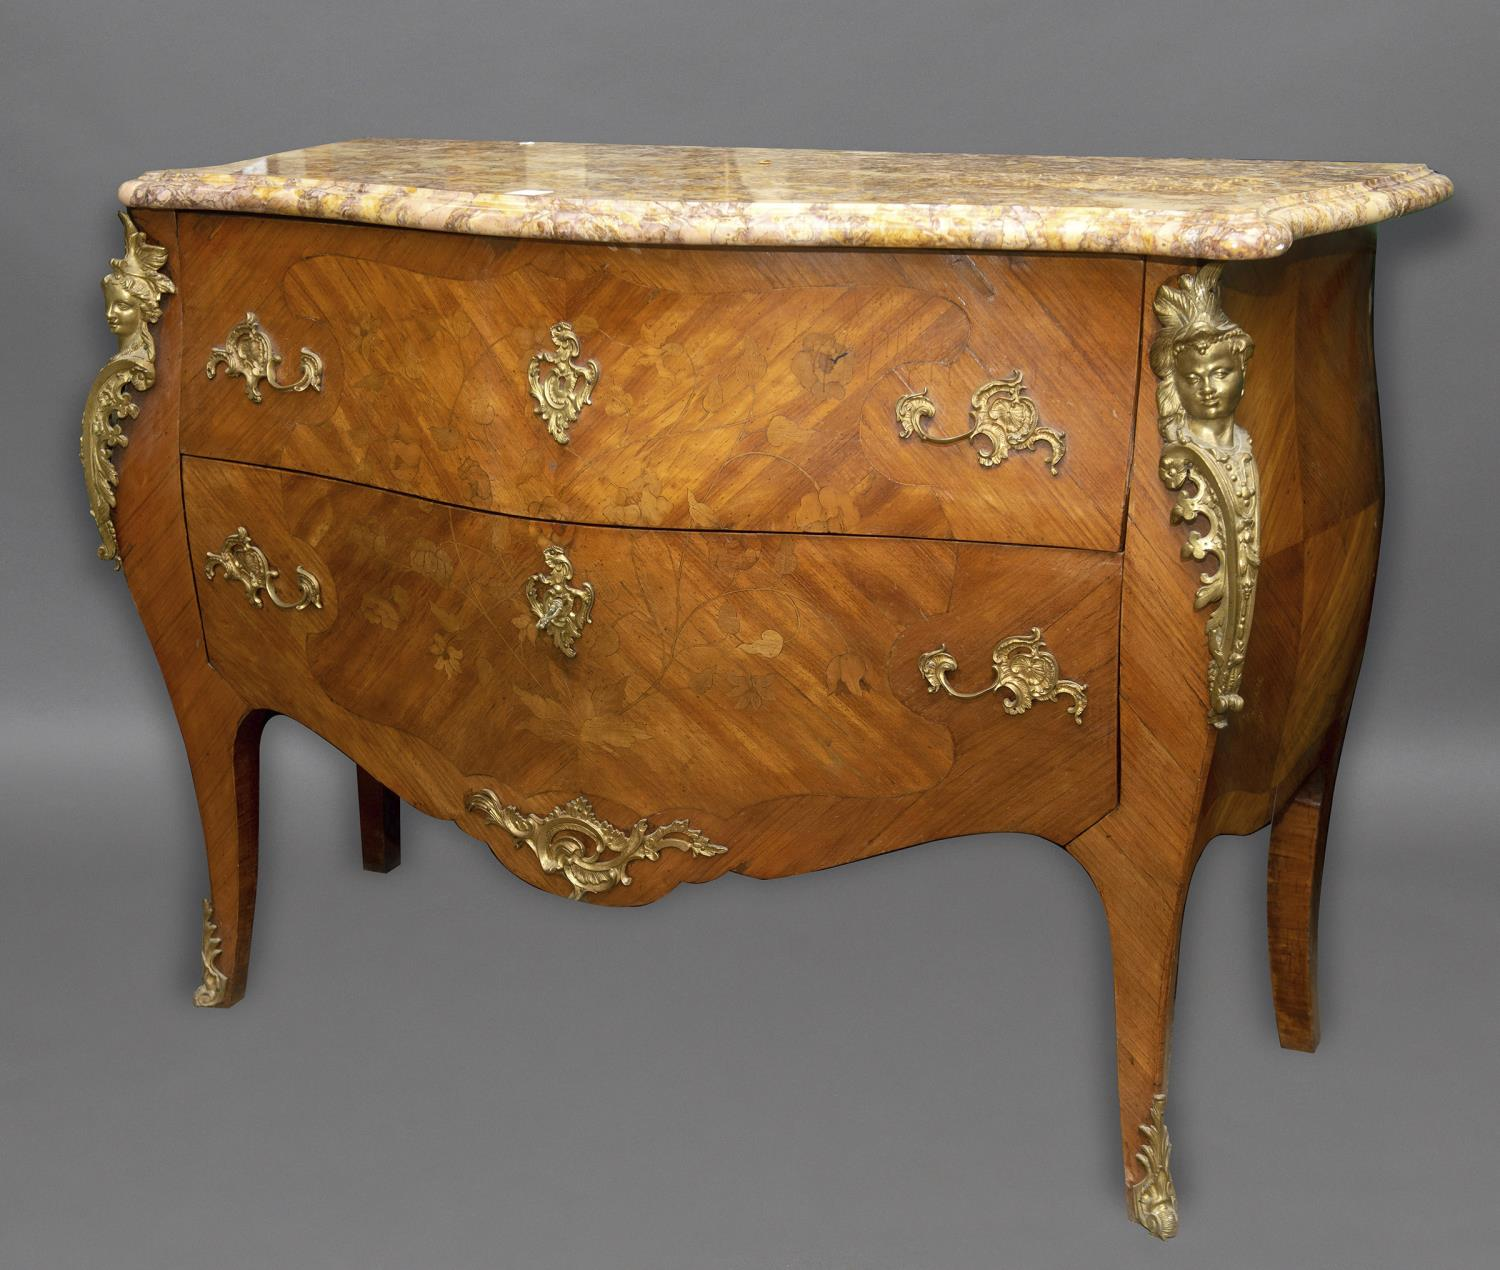 A LOUIS XVI STYLE MARBLE TOPPED COMMODE. The variegated marble top with serpentine front and moulded